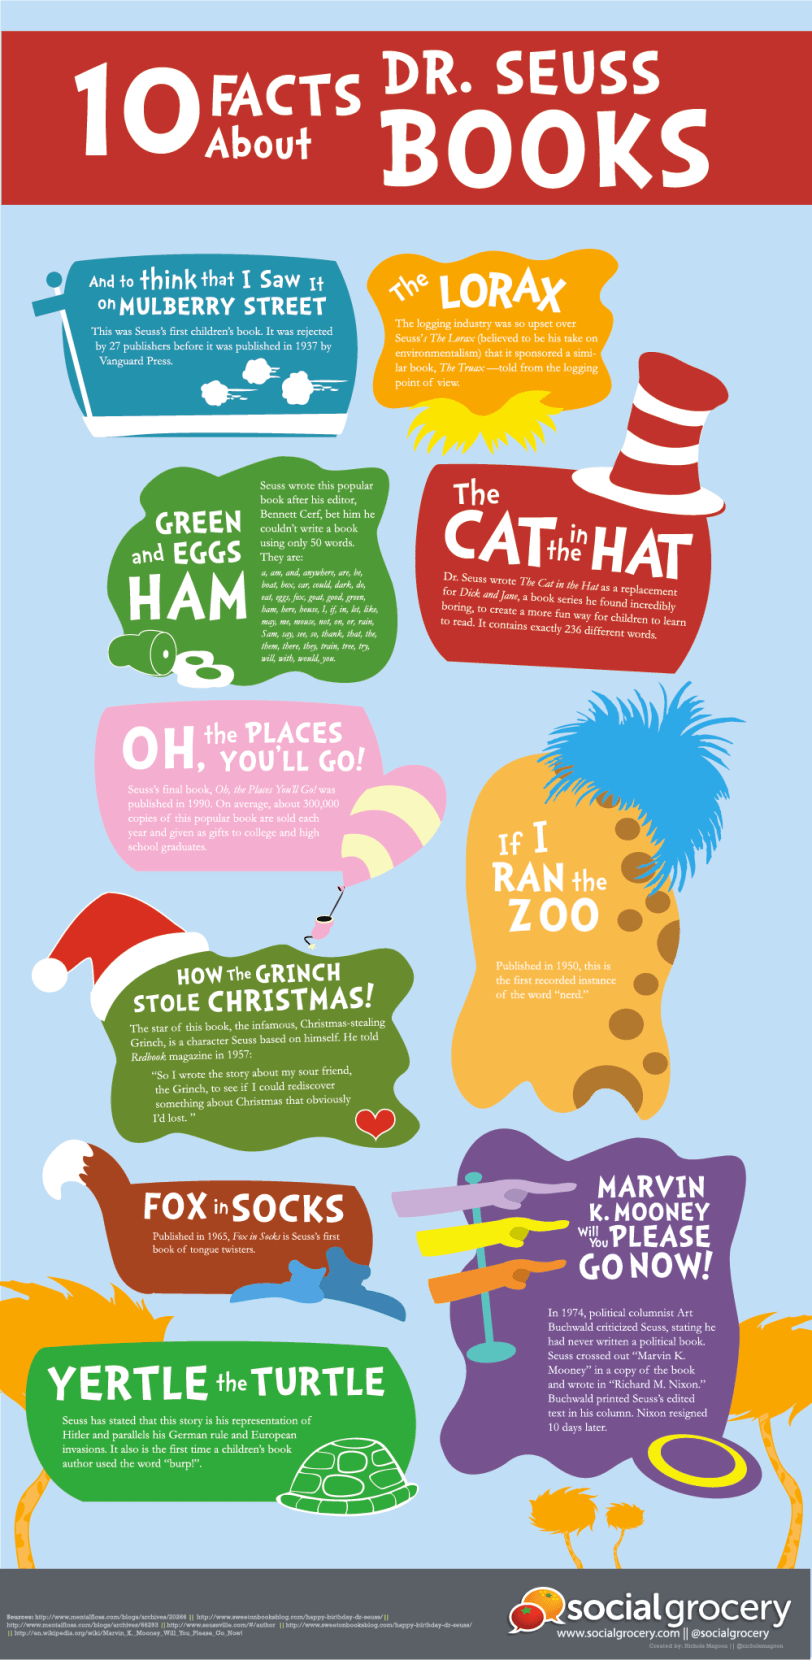 10-facts-about-dr-seuss-books_lessons-orlando espinosa